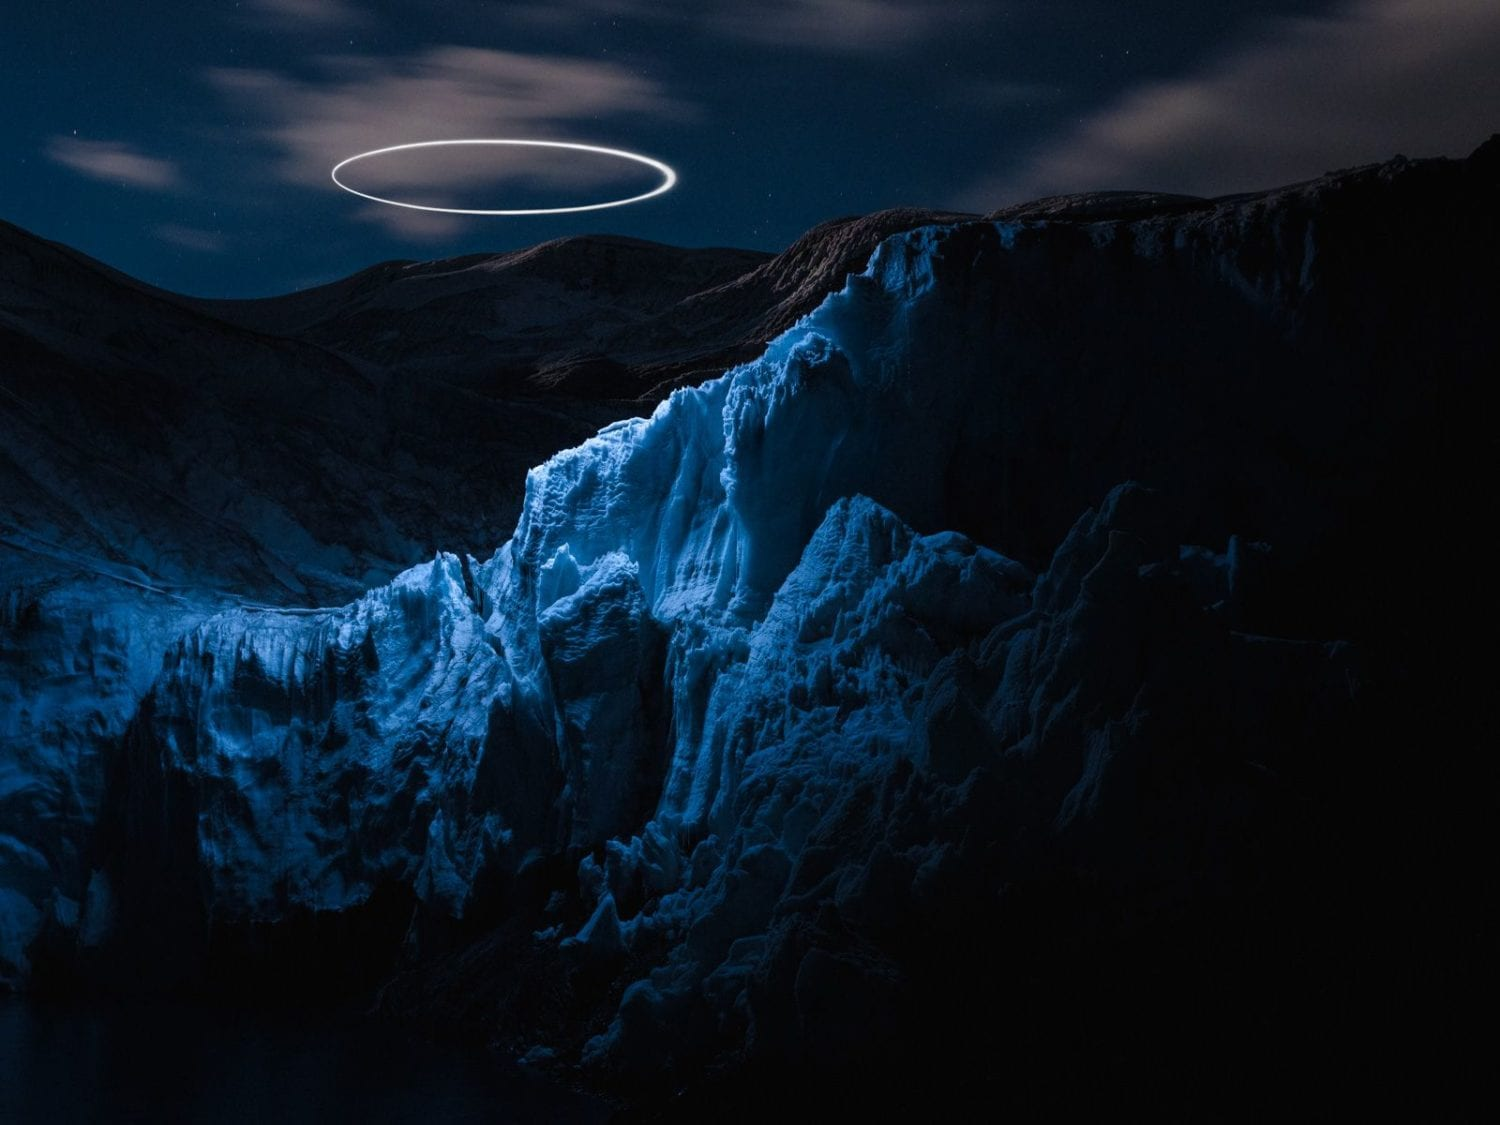 Reuben Wu Captures Light Paths With Drones Above Natural Landscapes Yellowtrace 13